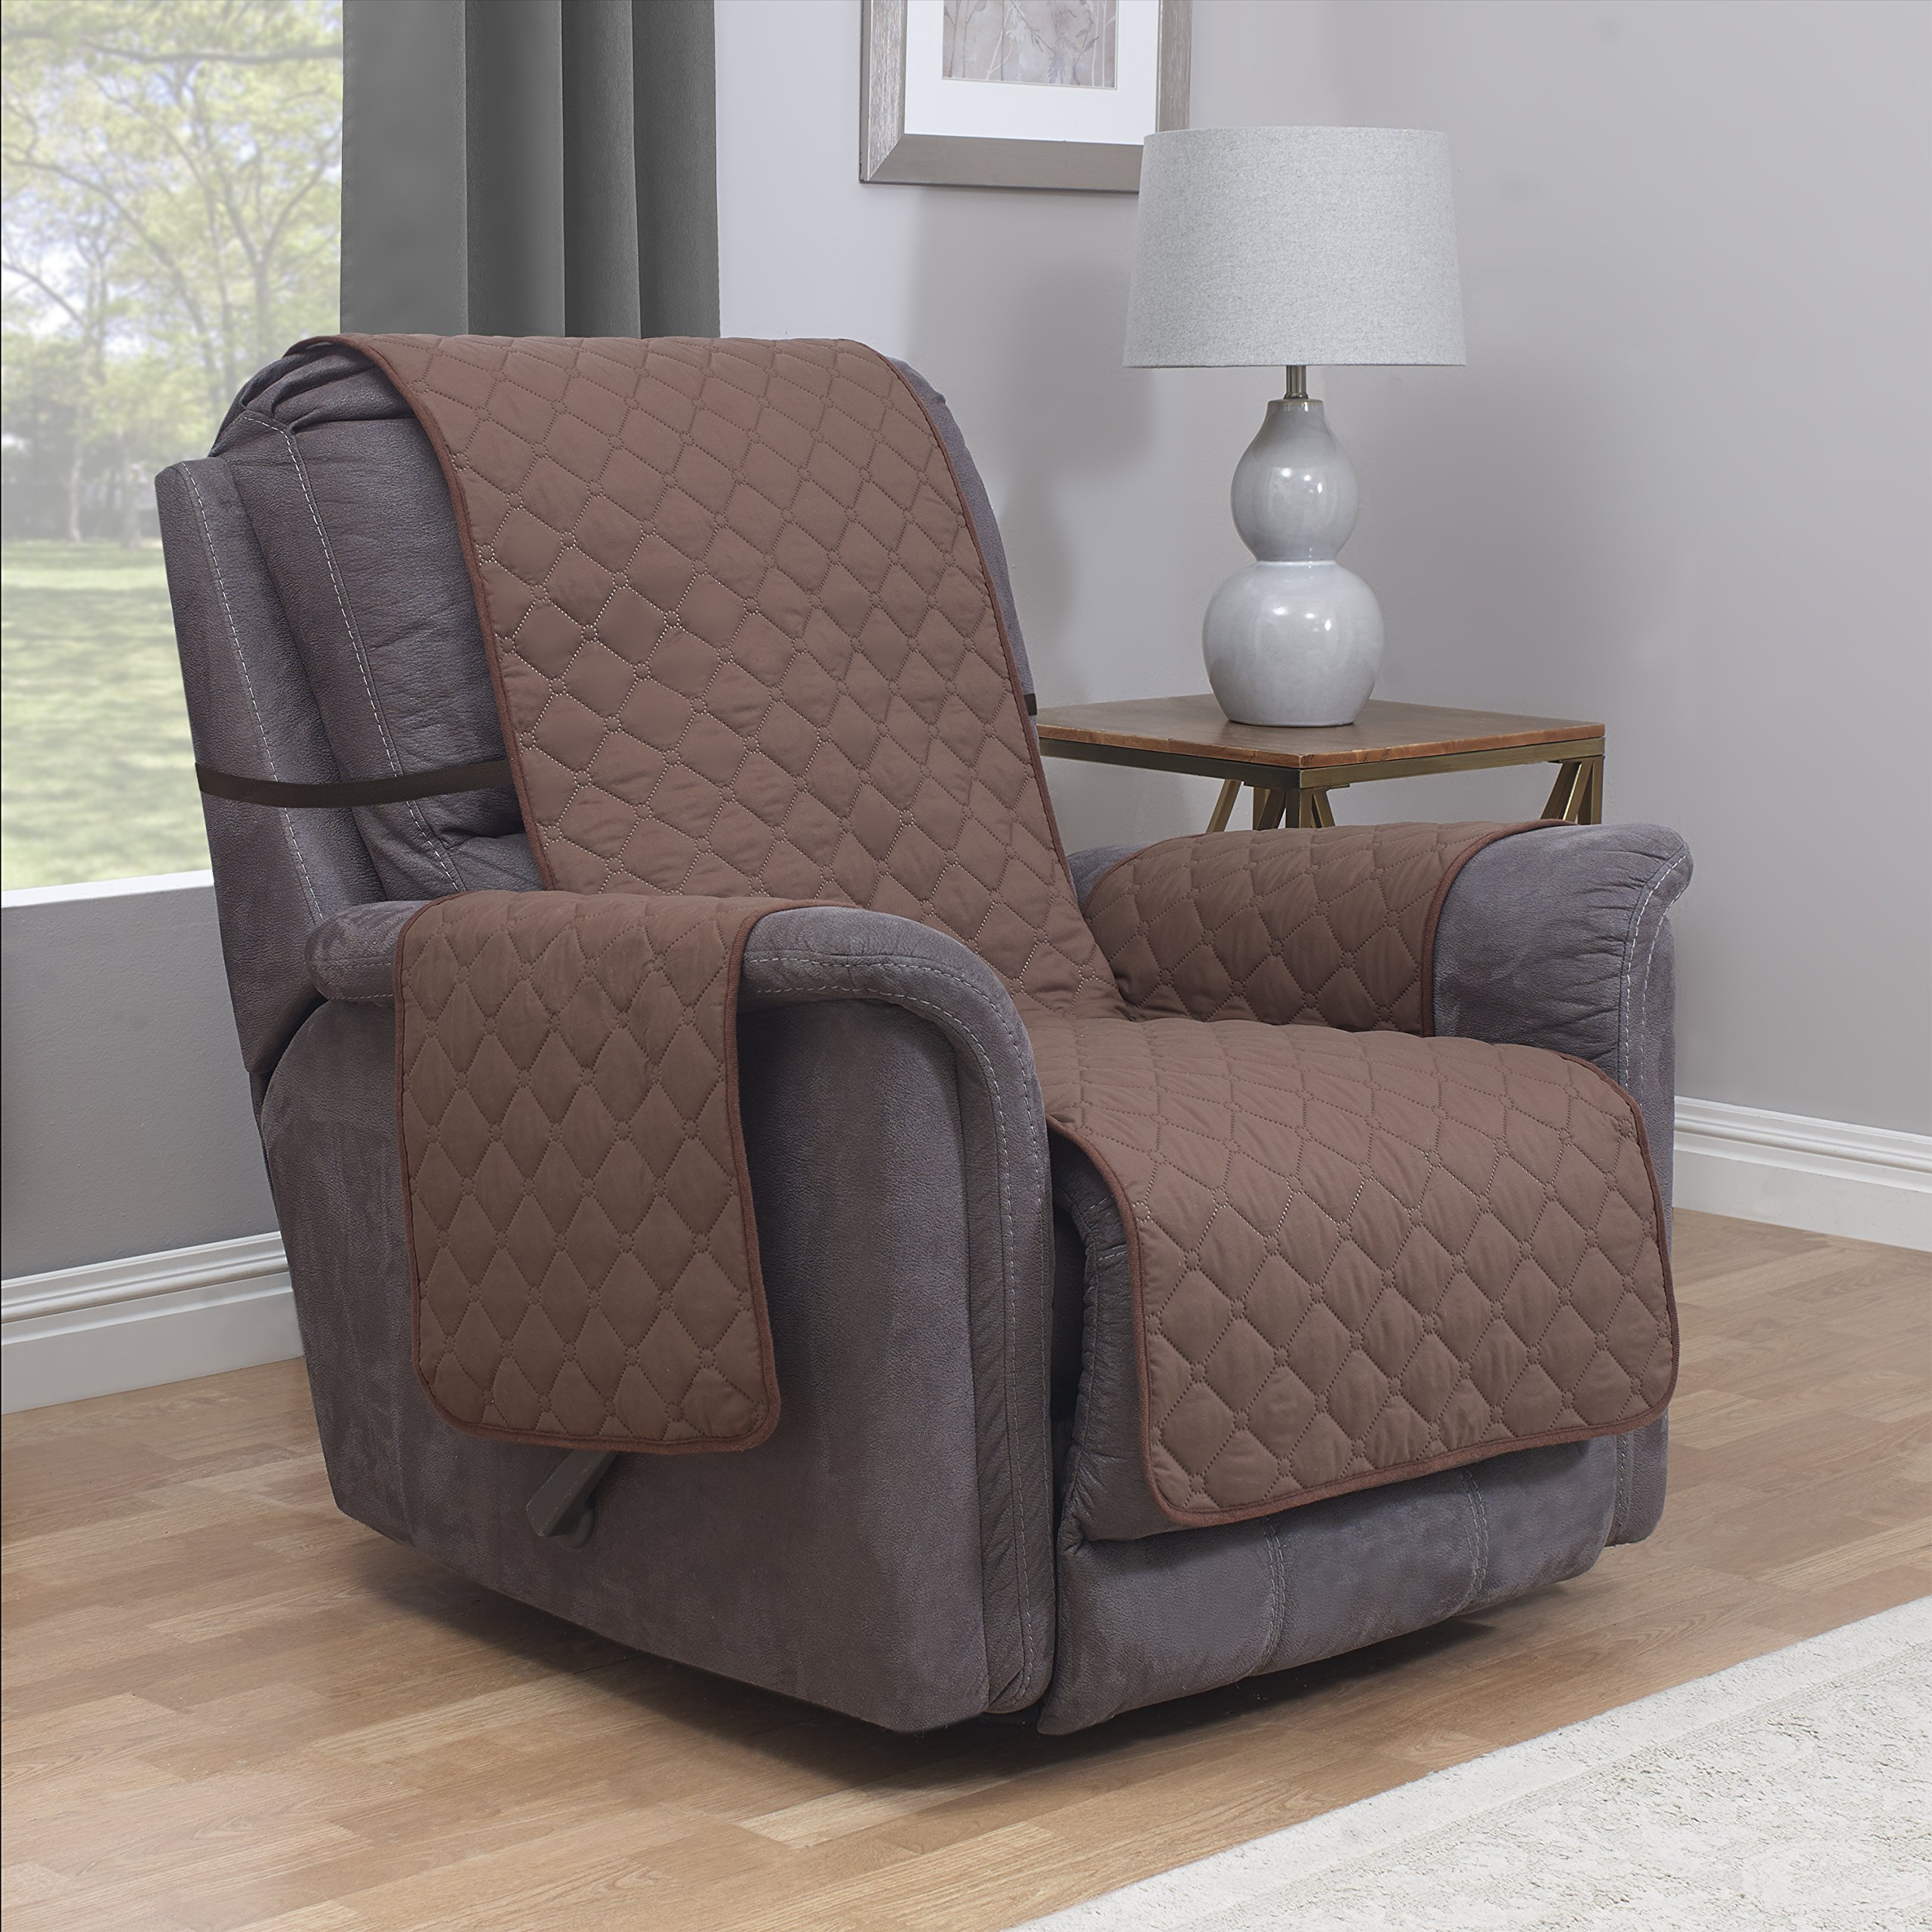 Furniture Fresh Waterproof Microfiber Furniture Protector with Elastic Back Strap (Recliner, Chocolate) by Furniture Fresh